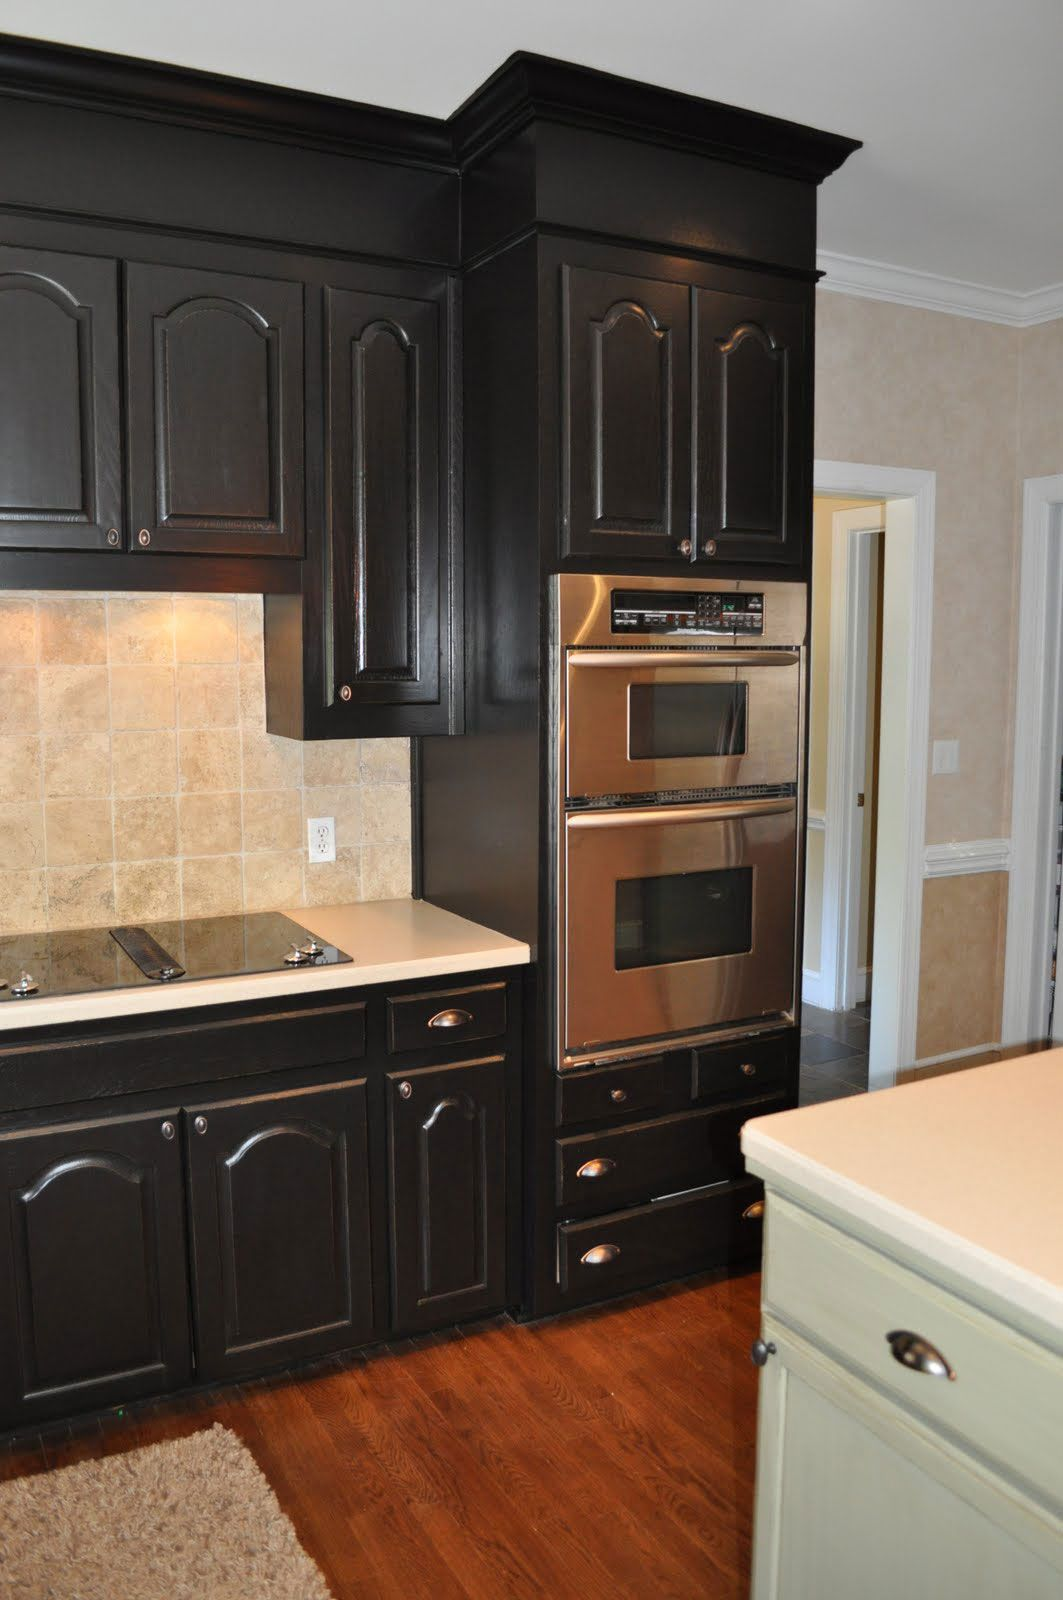 Painted Cathedral Kitchen Cabinets - The Kitchen